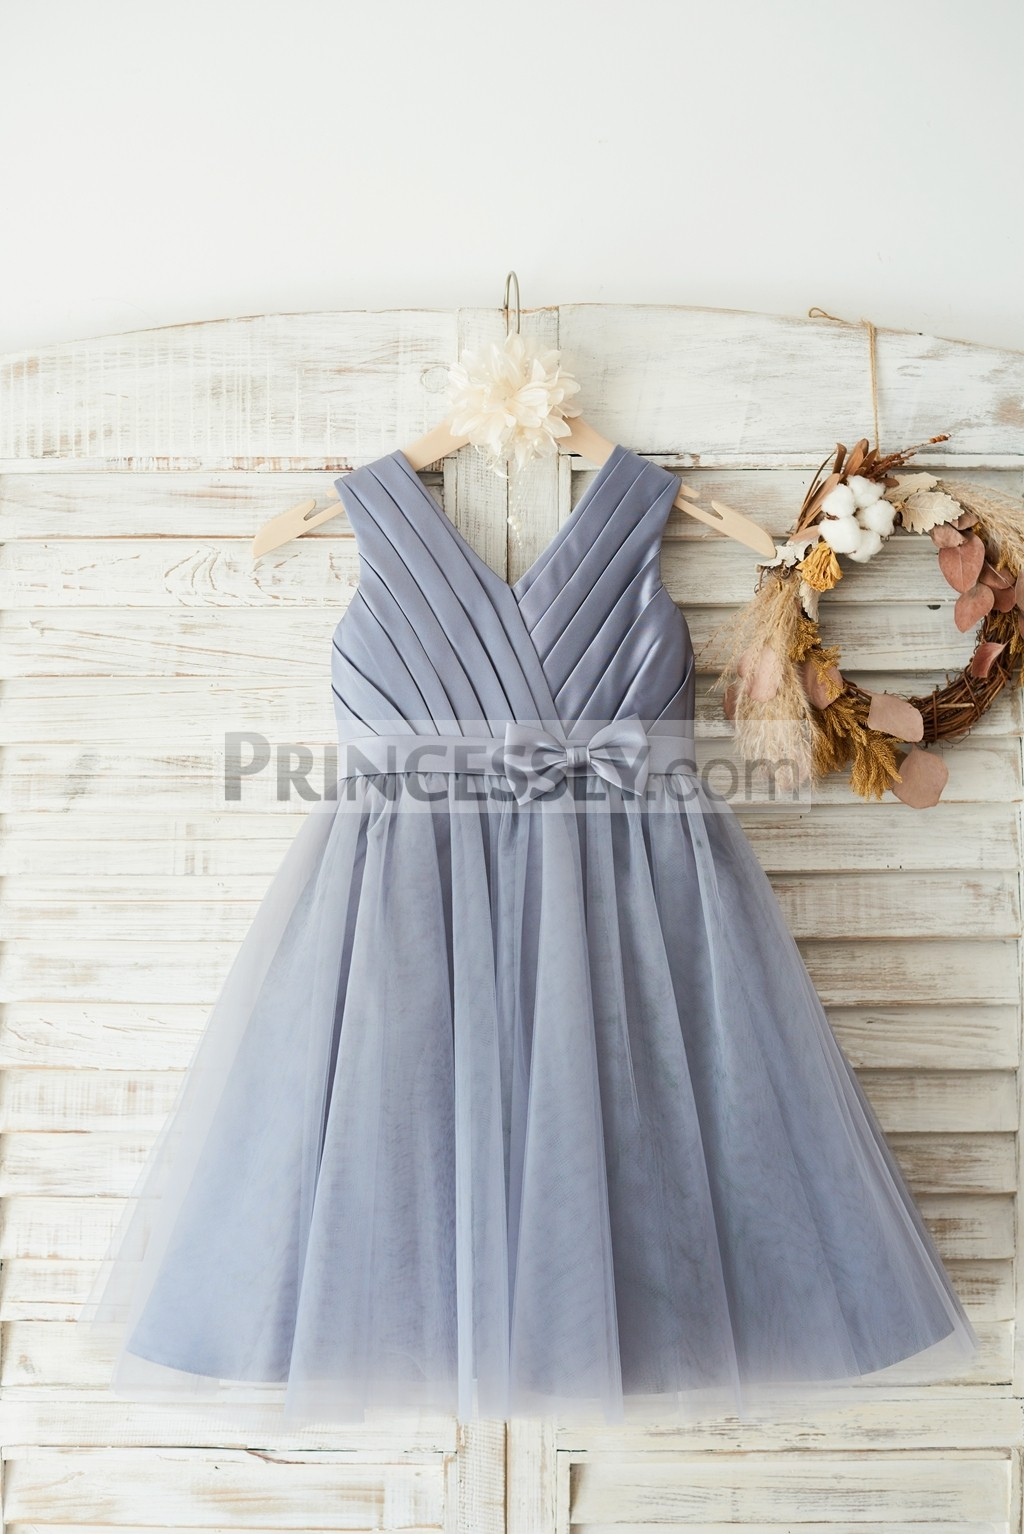 Princessly.com-K1003647-Gray Satin Tulle V Neckline Wedding Flower Girl Dress with Belt-31